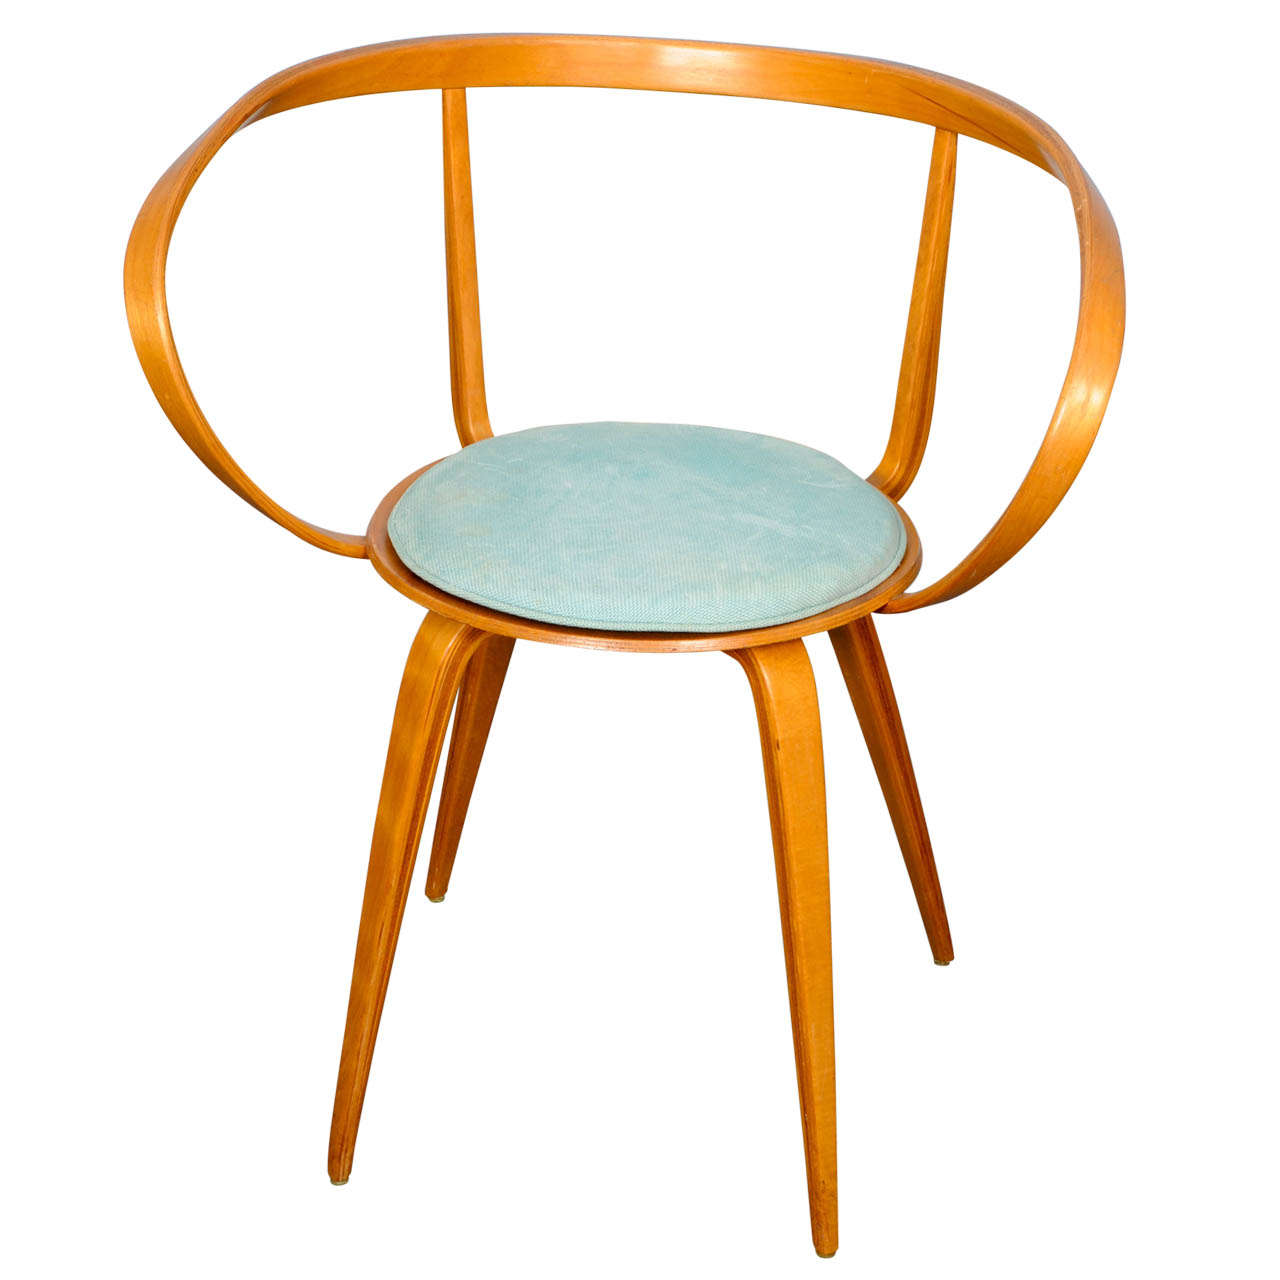 Pretzel Chair Pretzel Chair With Armrests By George Nelson At 1stdibs